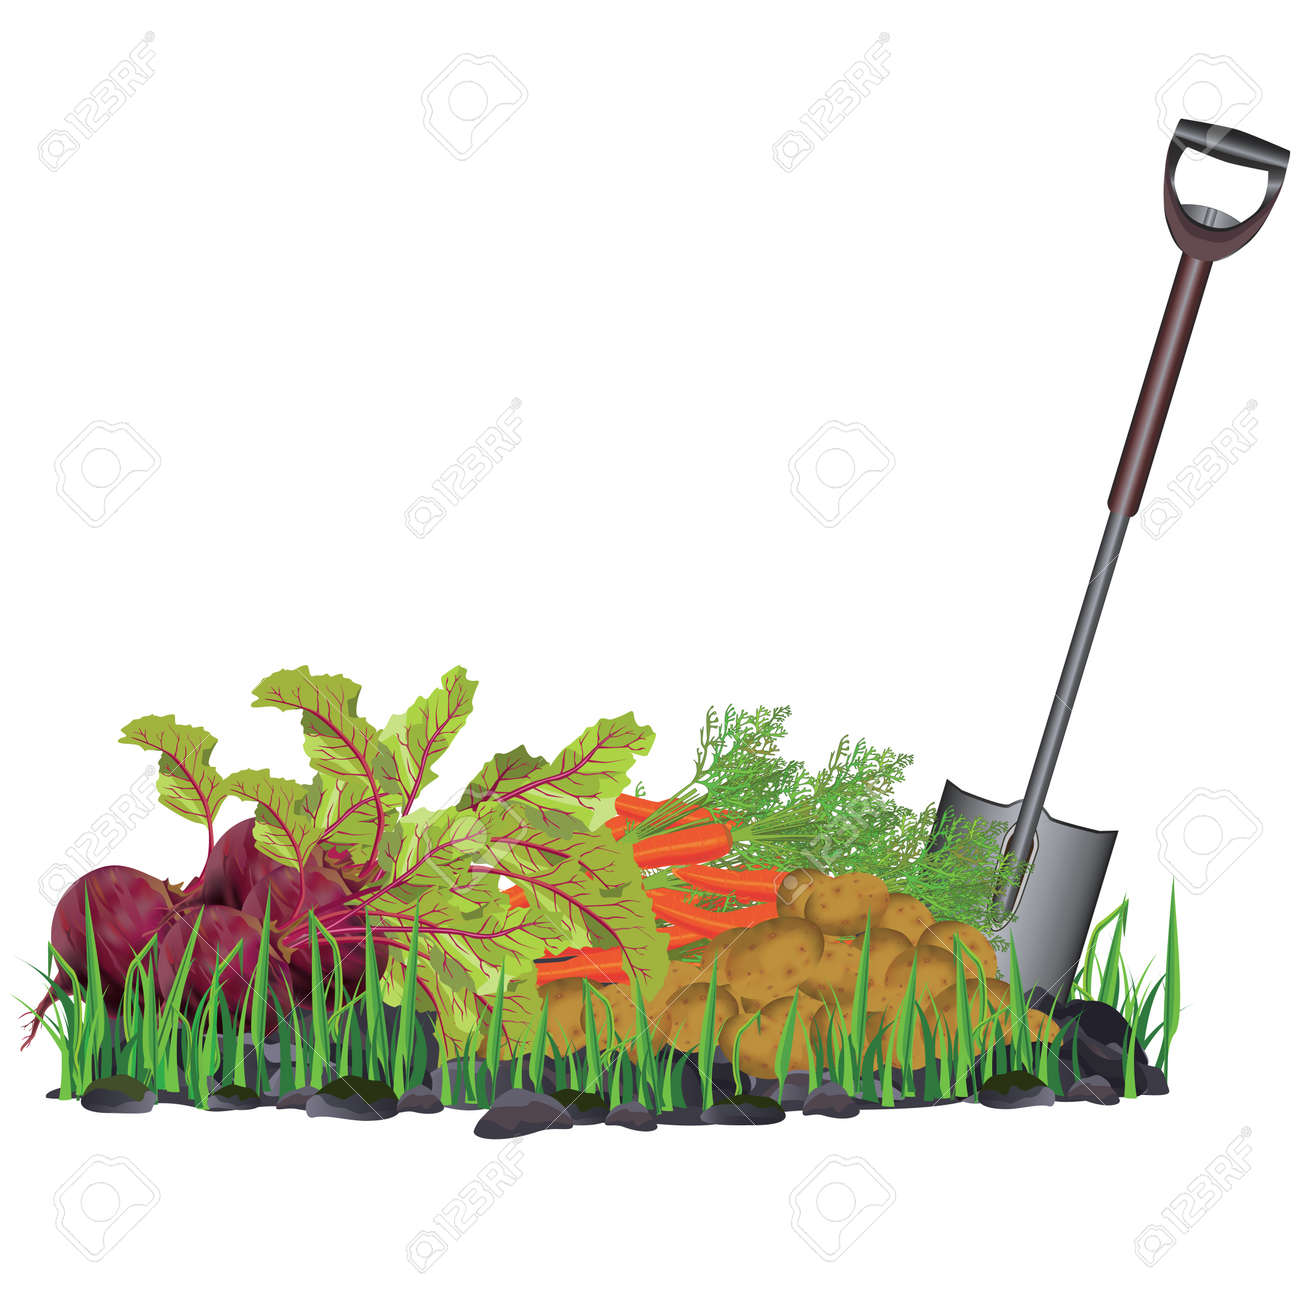 33657 Vegetable Garden Cliparts Stock Vector And Royalty Free